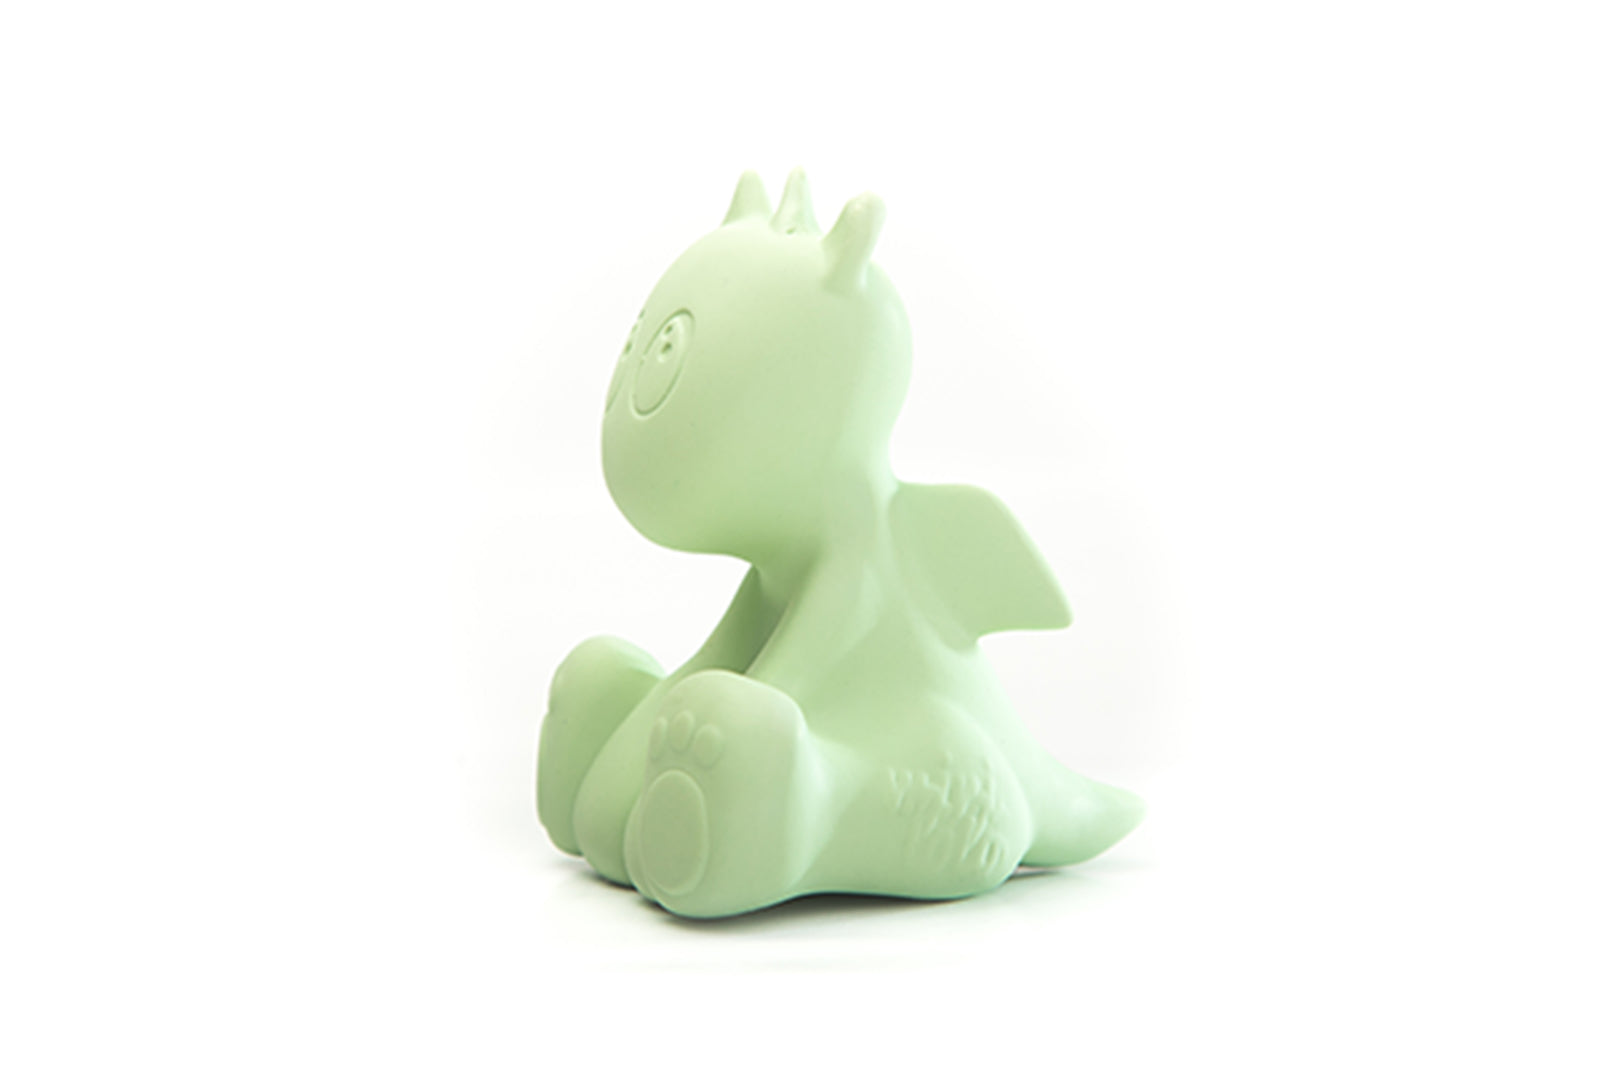 Mint Green Lolo the Dragon Teething and Bath Toy side view